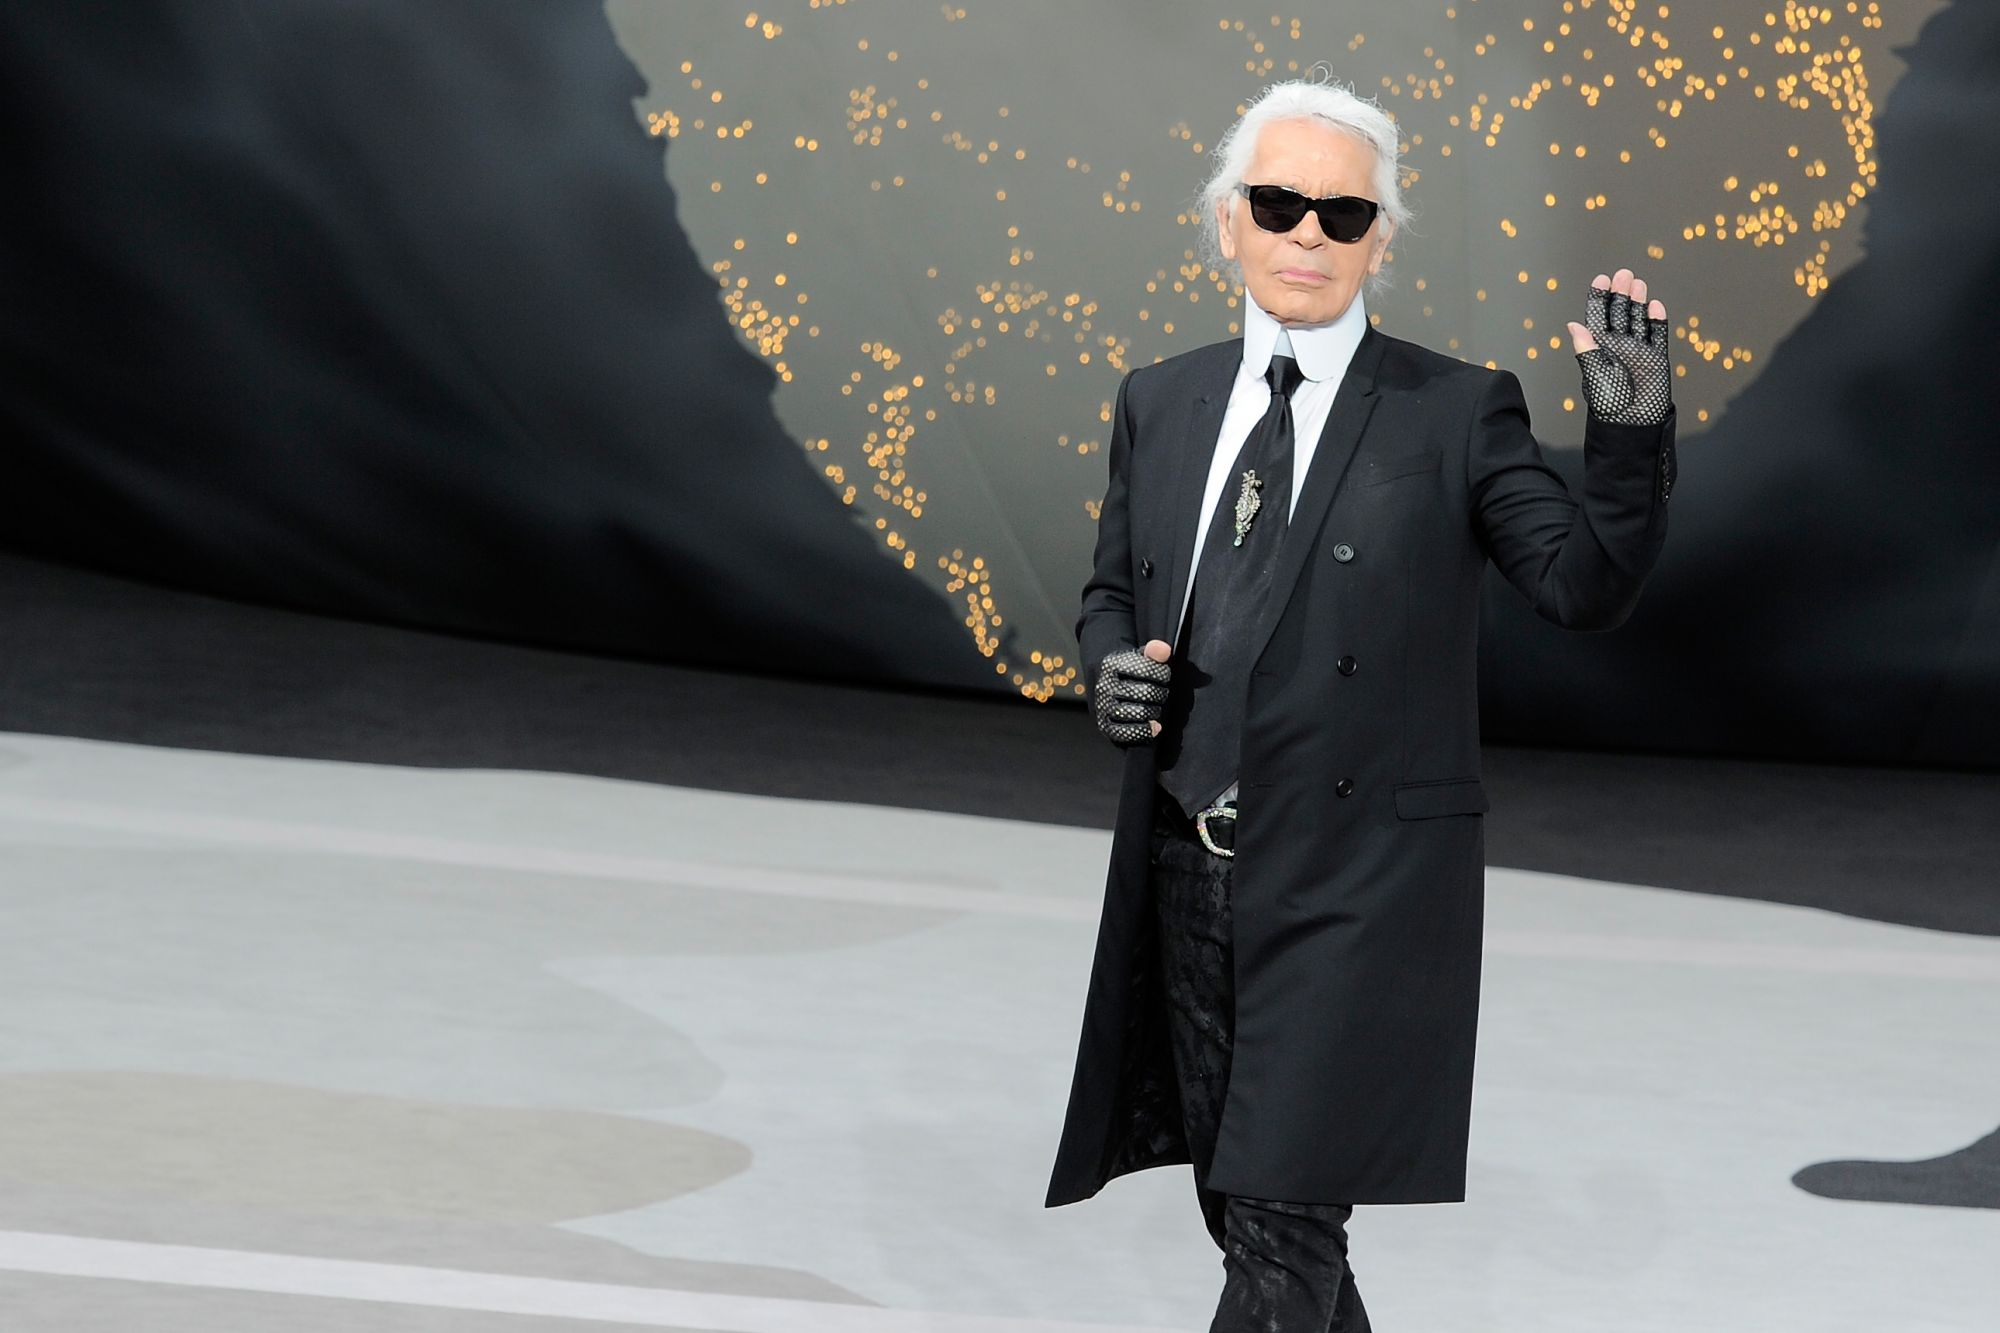 PARIS, FRANCE - MARCH 05:   Karl Lagerfeld walks the runway during the Chanel Fall/Winter 2013/14 Ready-to-Wear show as part of Paris Fashion Week at Grand Palais on March 5, 2013 in Paris, France.  (Photo by Kristy Sparow/FilmMagic)